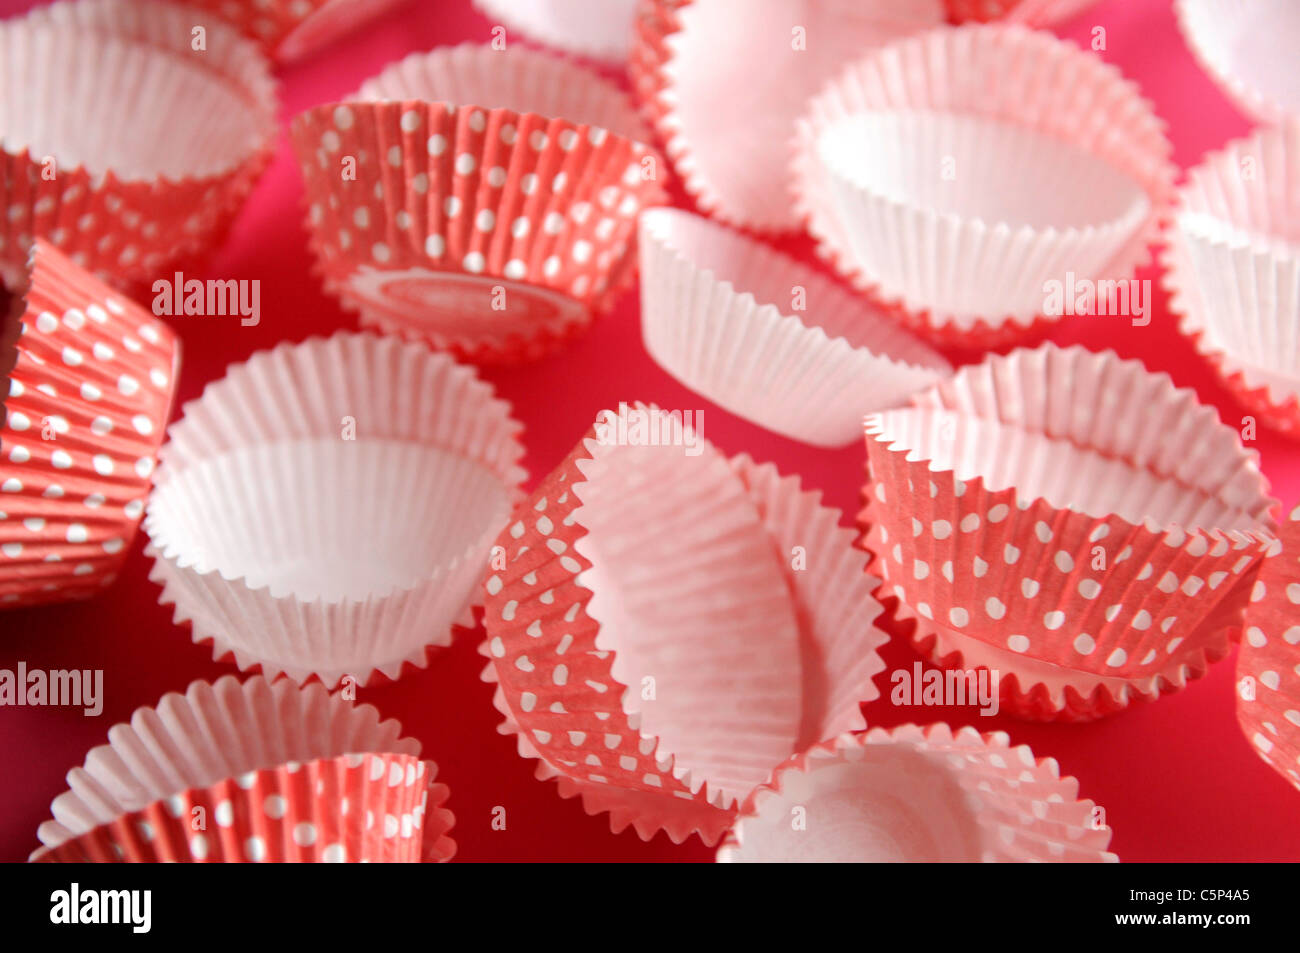 Pink Muffin cases with white dots - Stock Image